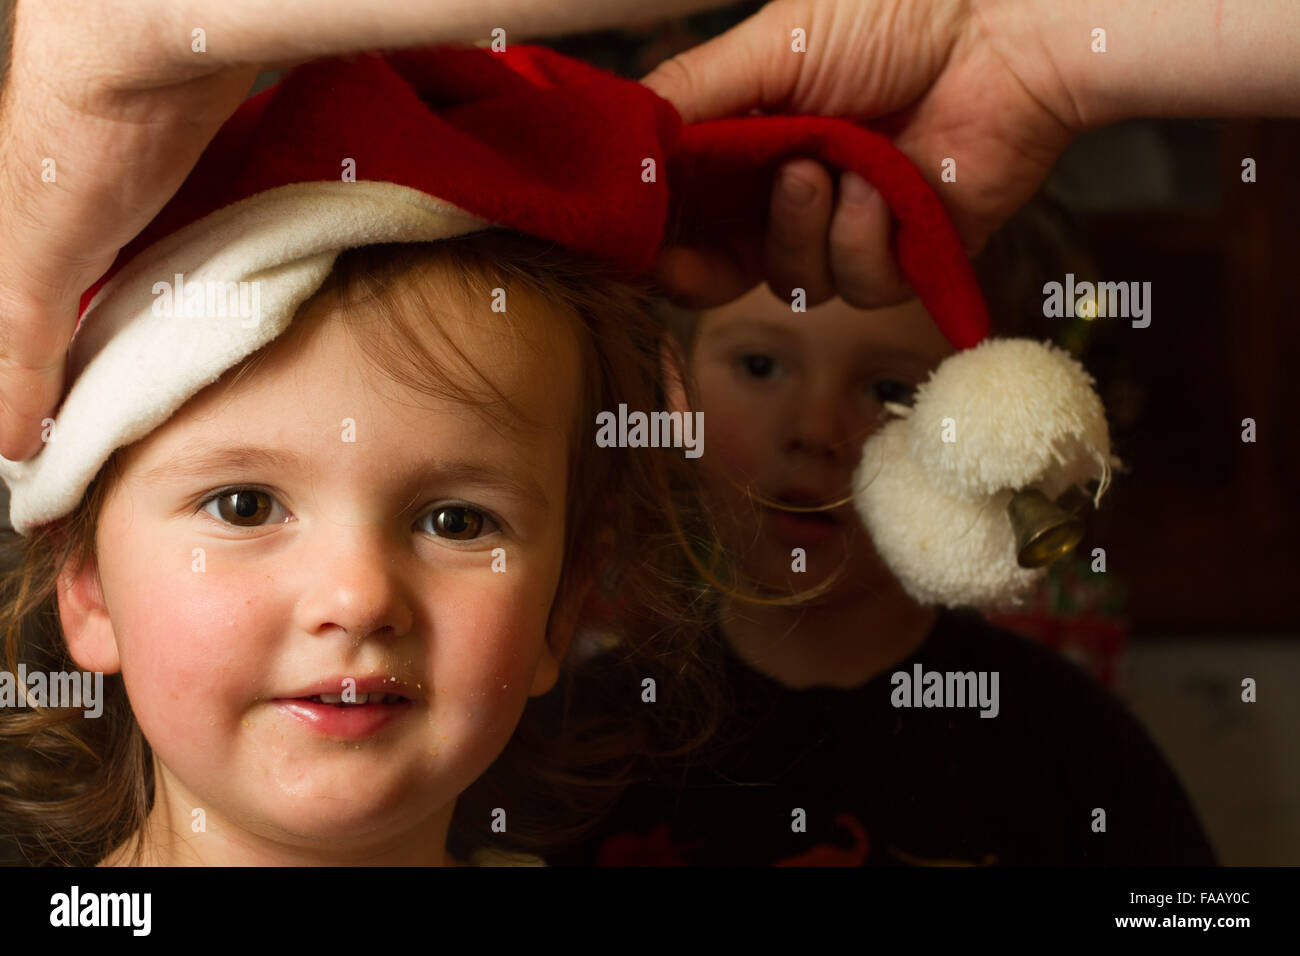 9959bbdc Santa hat being put on little girl by adult while brother looks on in the  background. Johann Van Tonder / Alamy Stock Photo